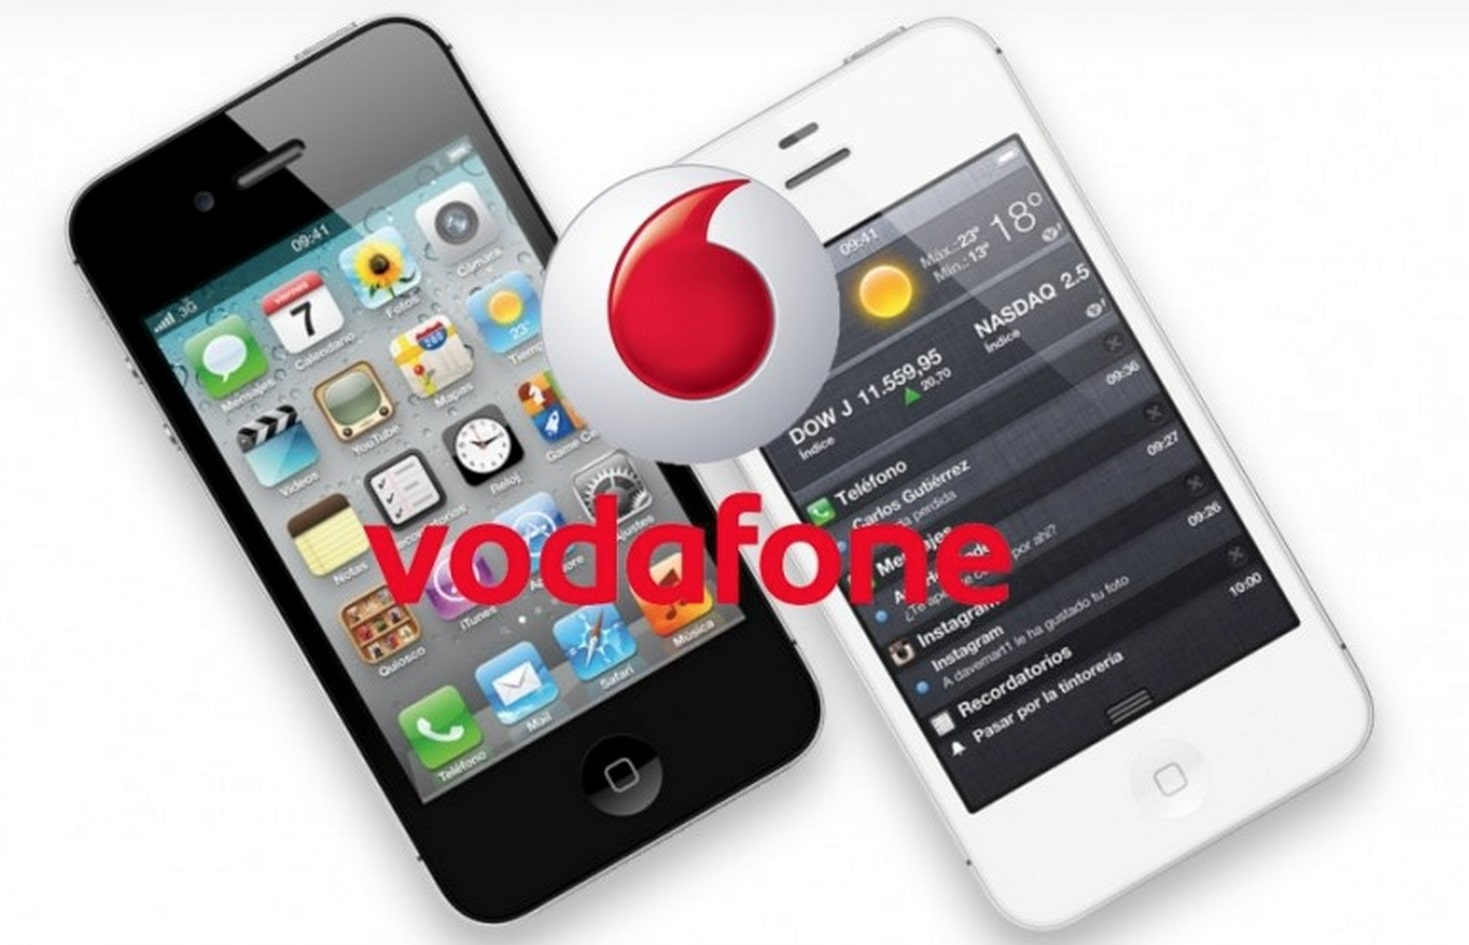 Vodafone SIM Network Unlock Pin